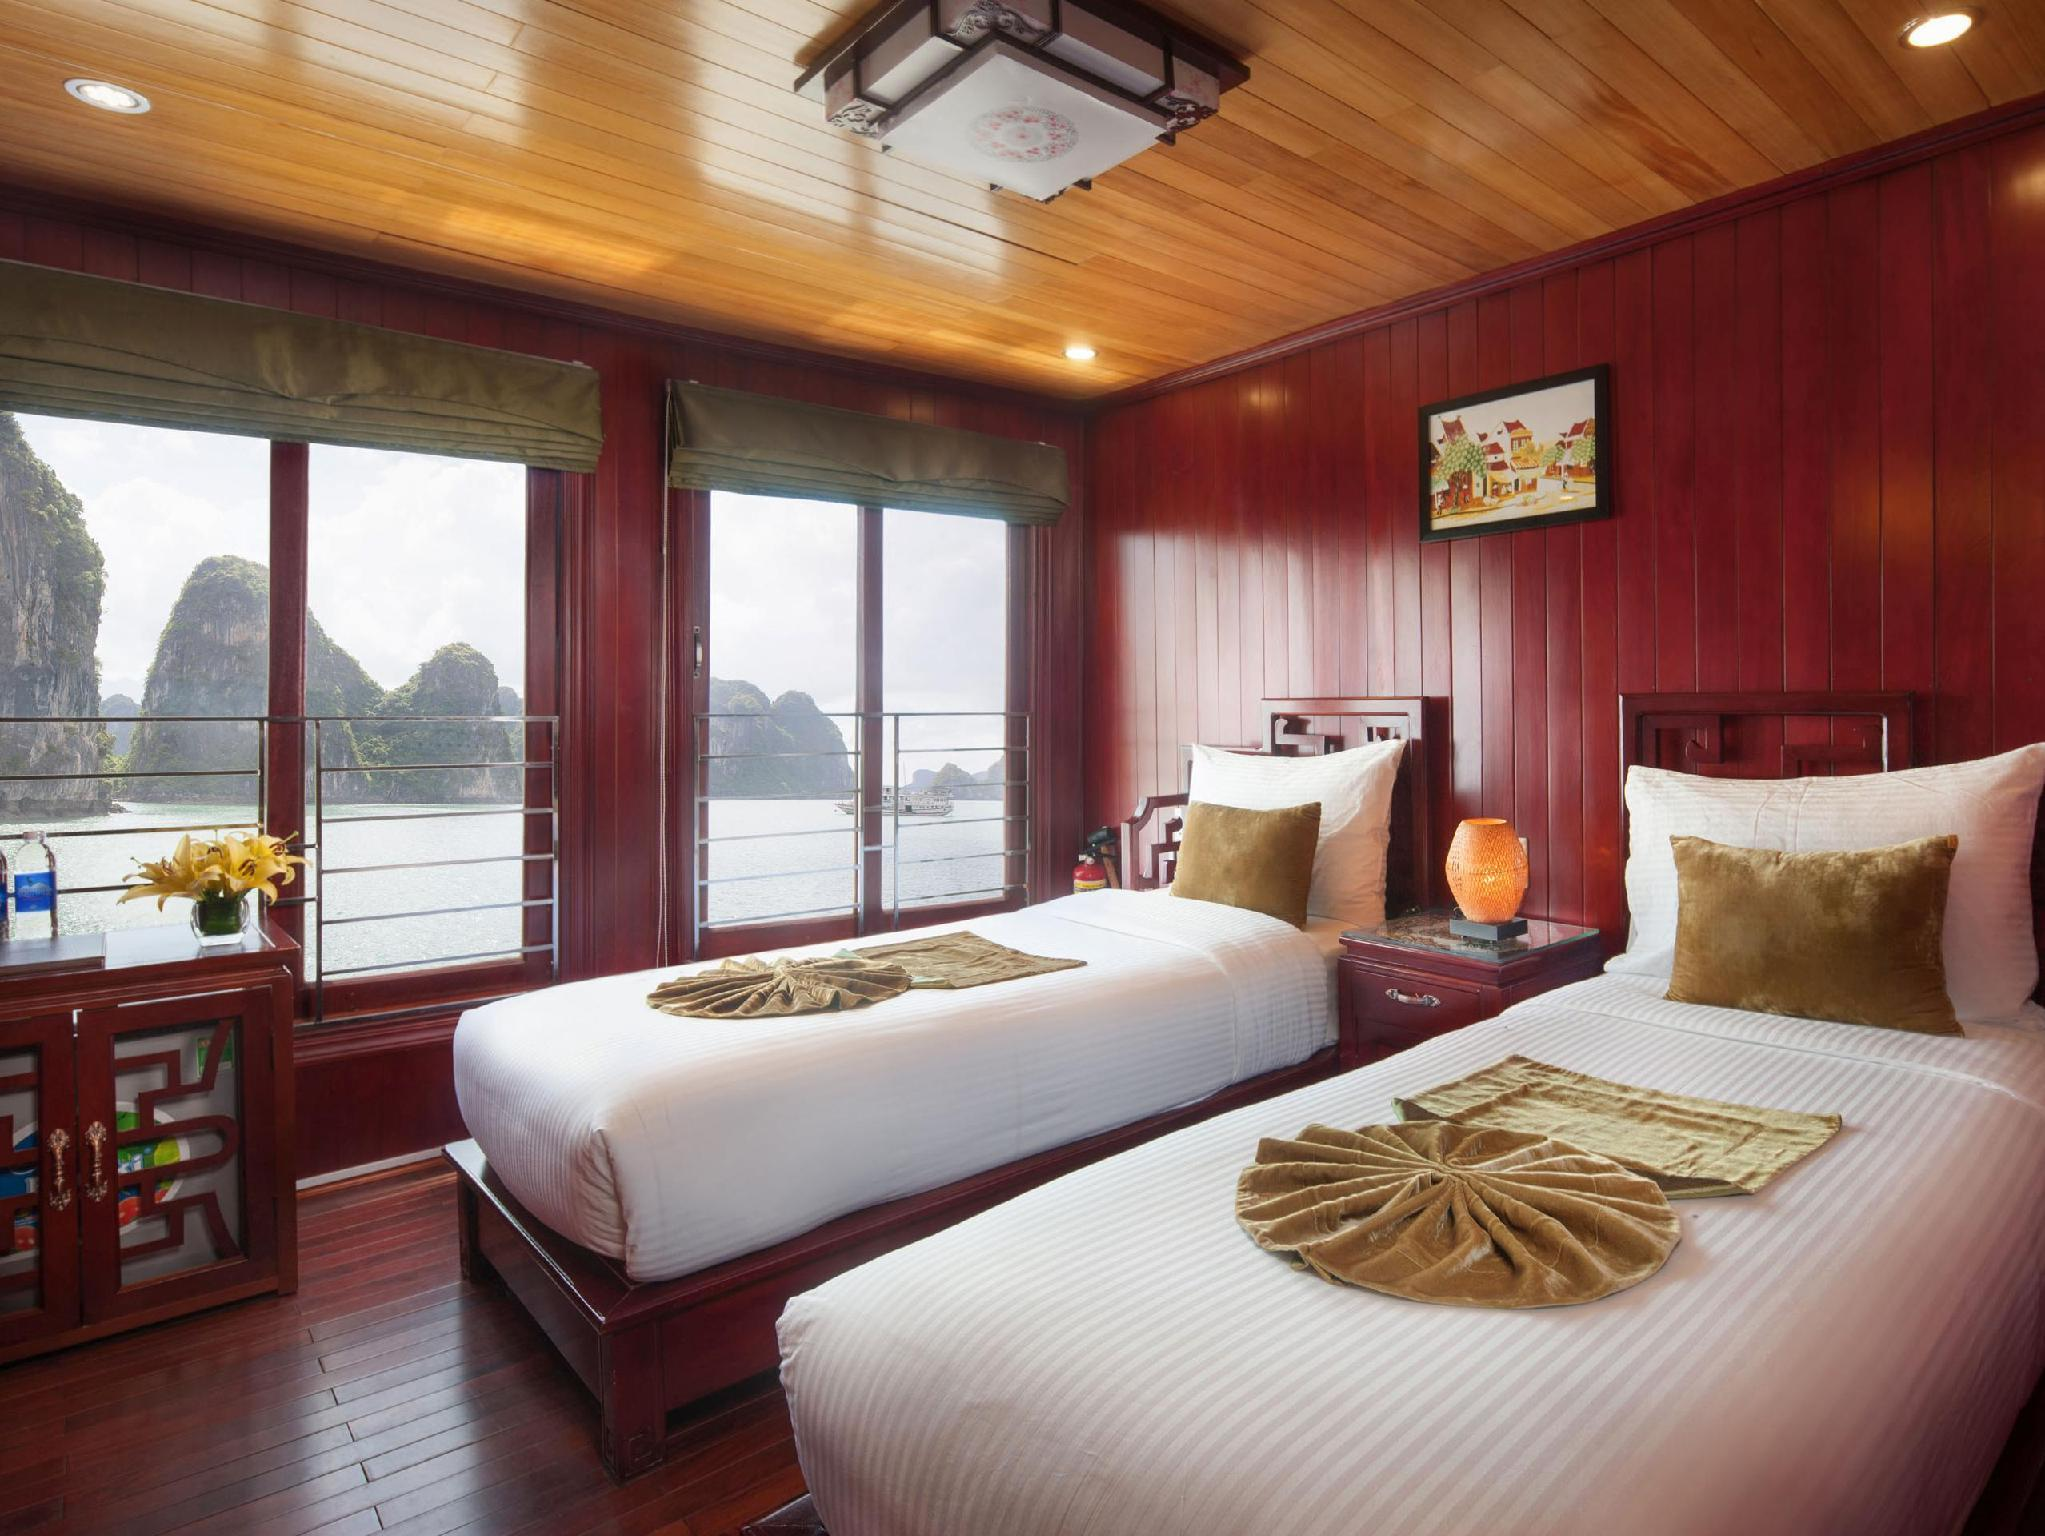 Ocean View Double or Twin Room - 3 Days 2 Nights On Boat